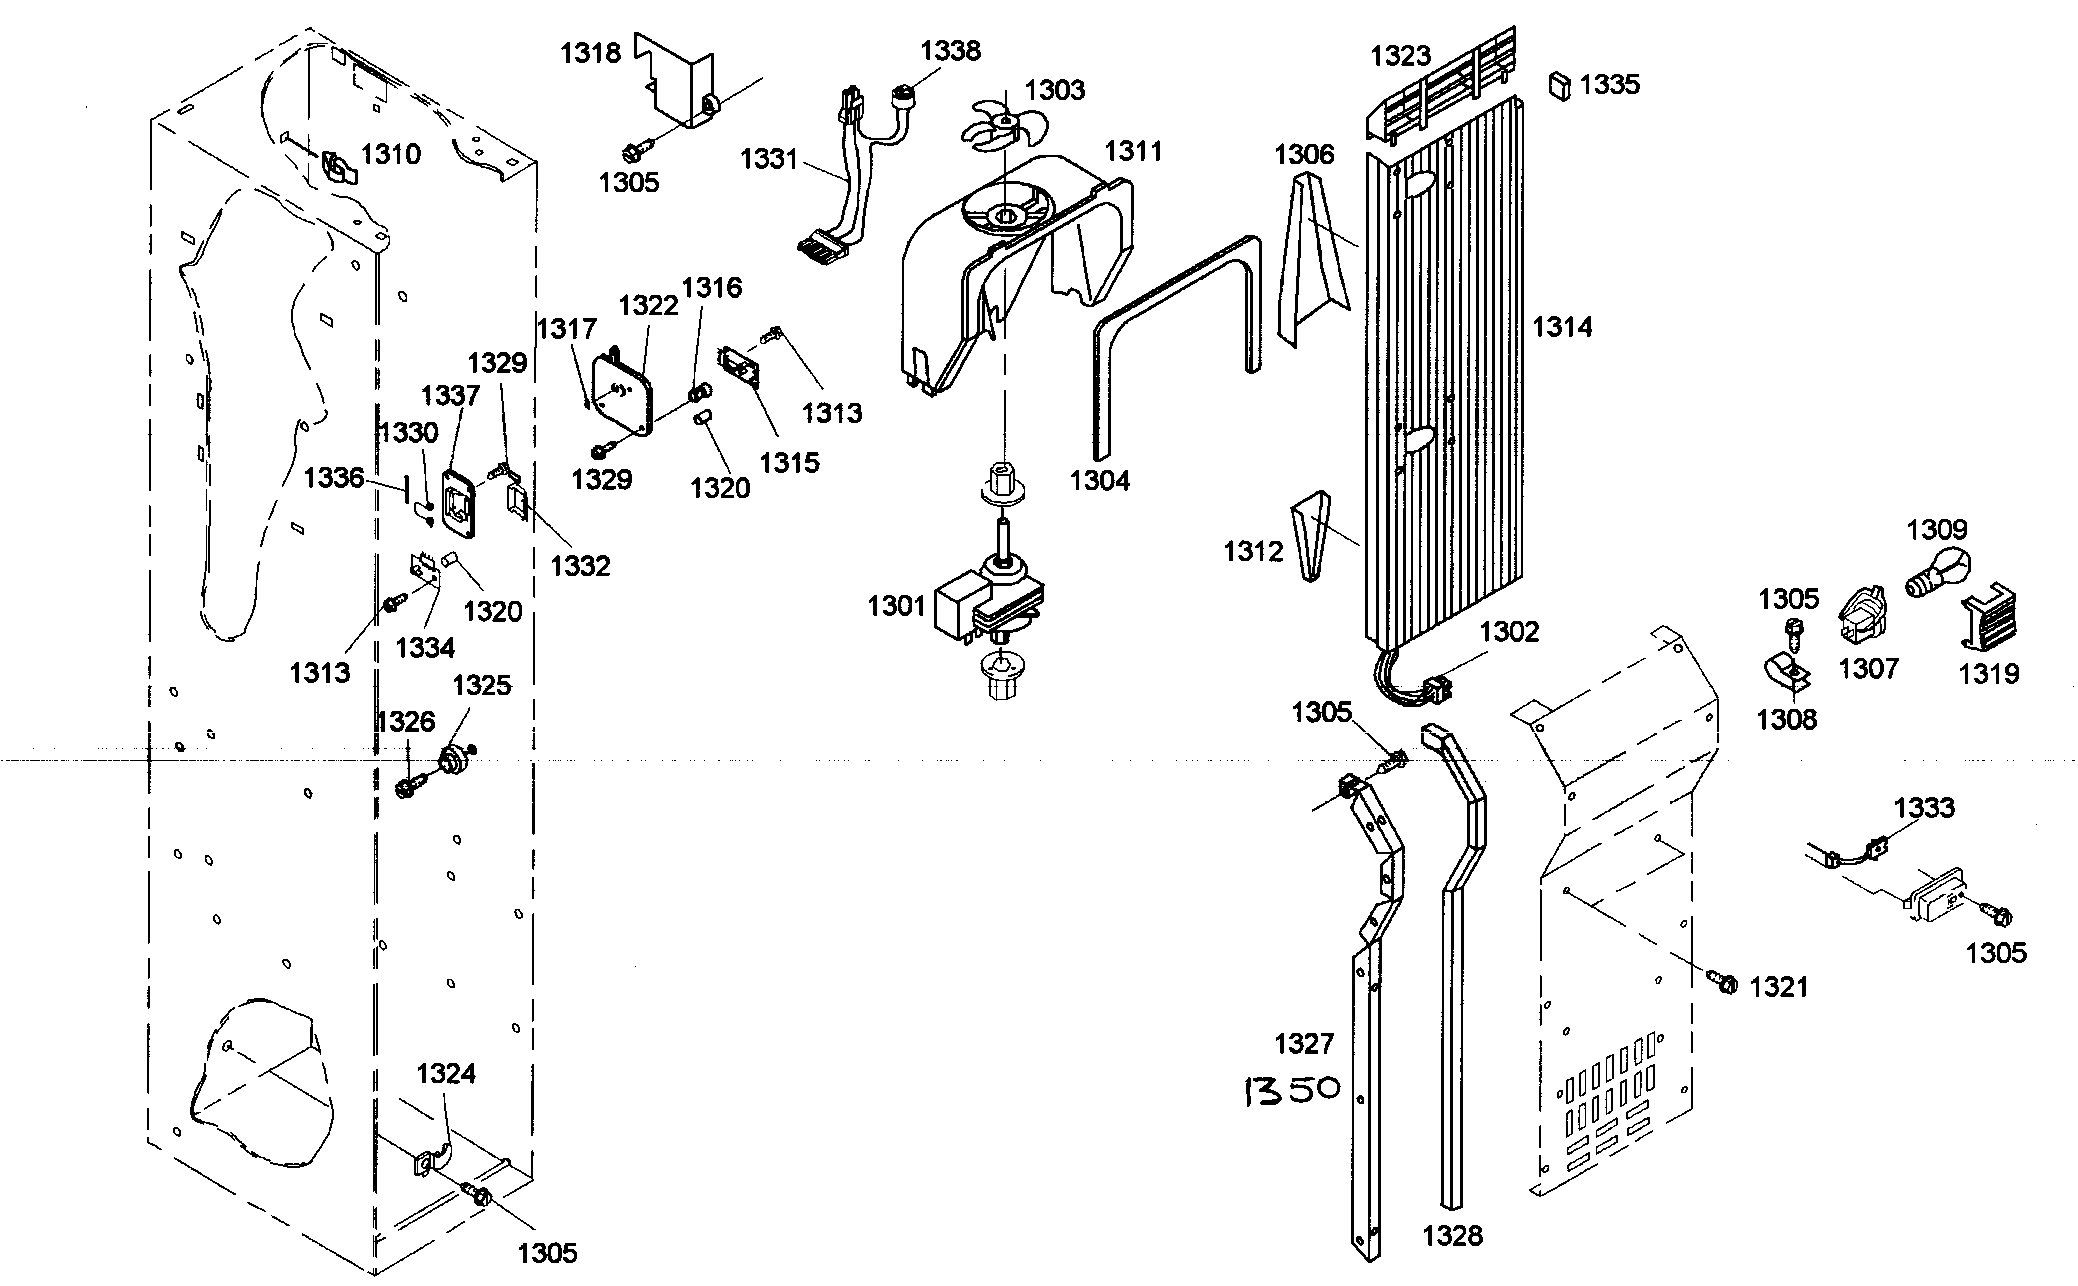 Thermador KBUDT4265E/01 duct assy diagram